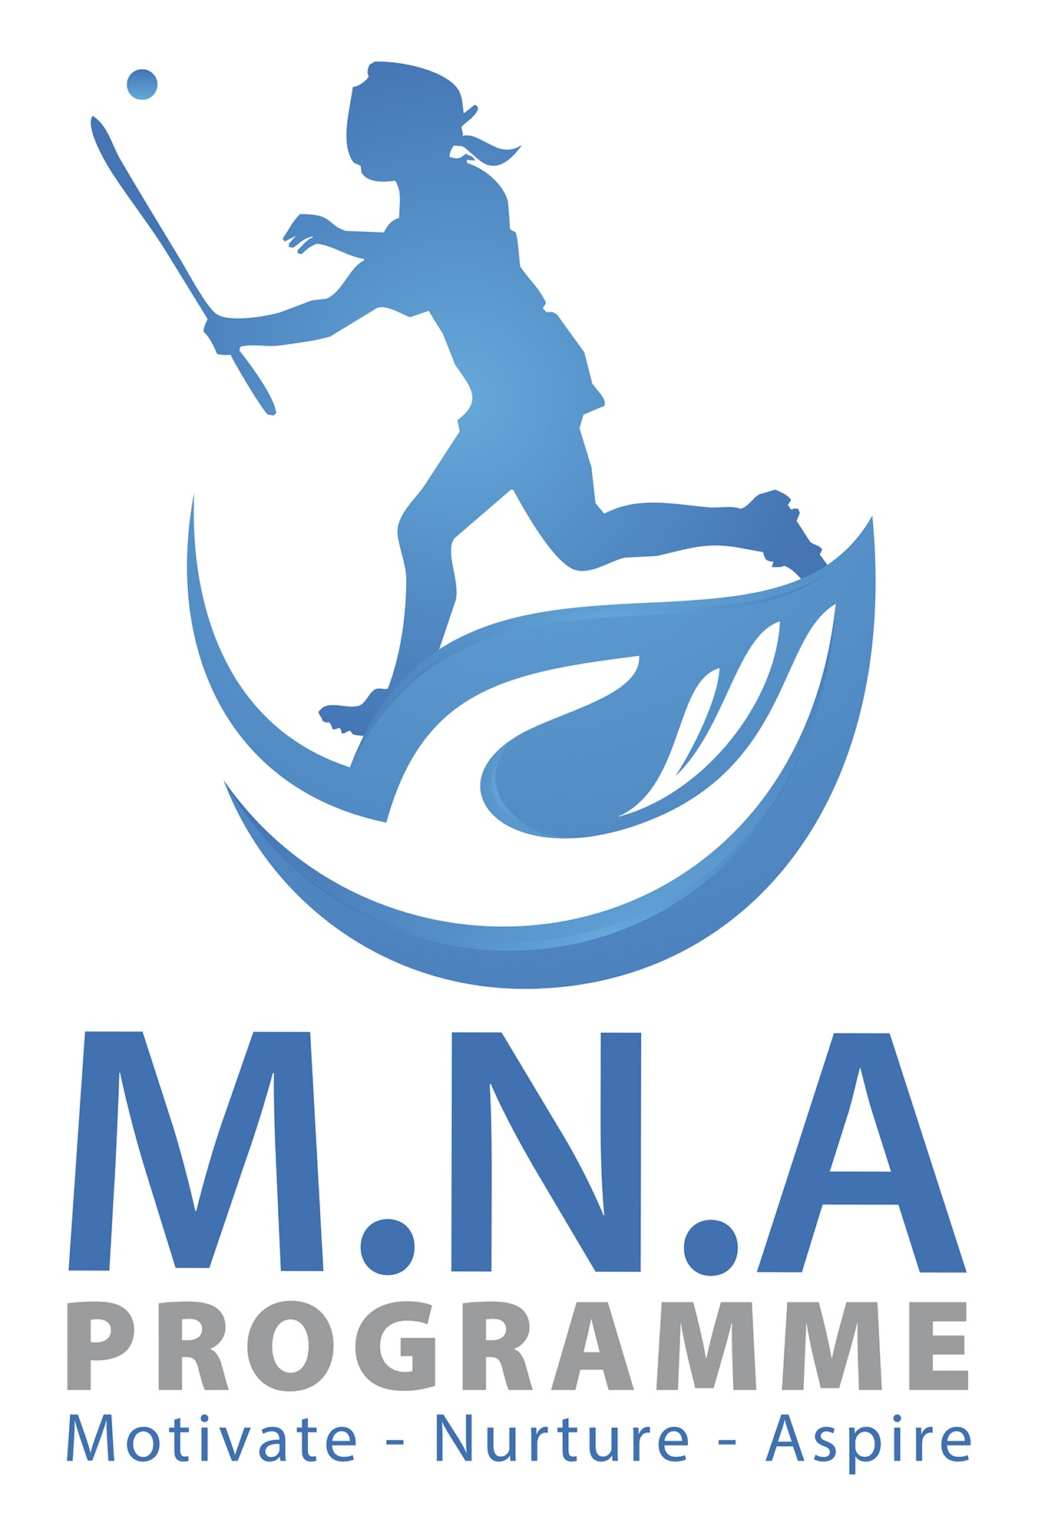 Promotional Poster for the Camogie Association's new initiative M.N.A Programme